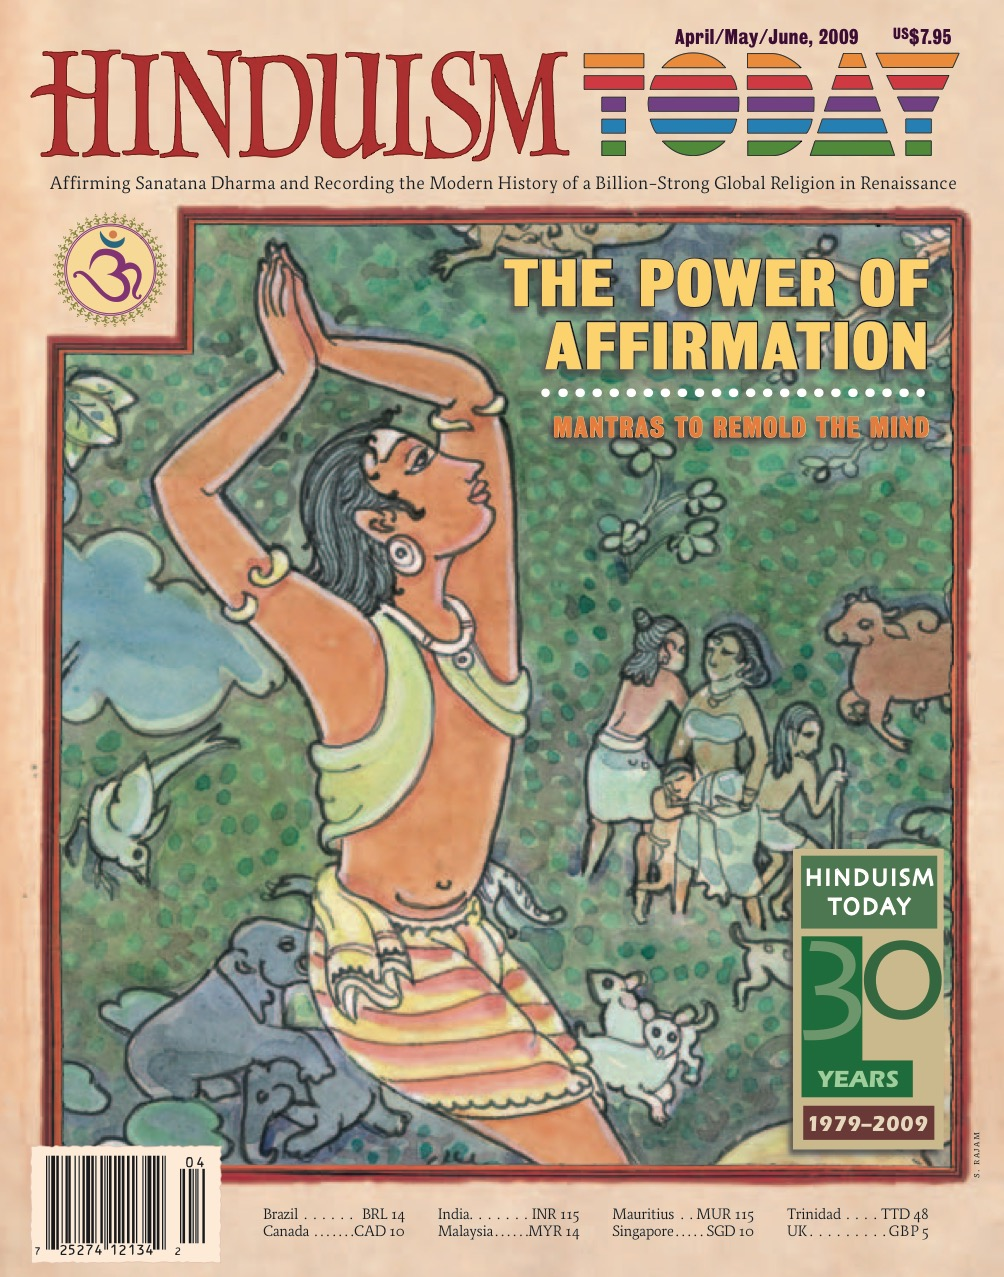 Hinduism Today Apr/May/Jun 2009